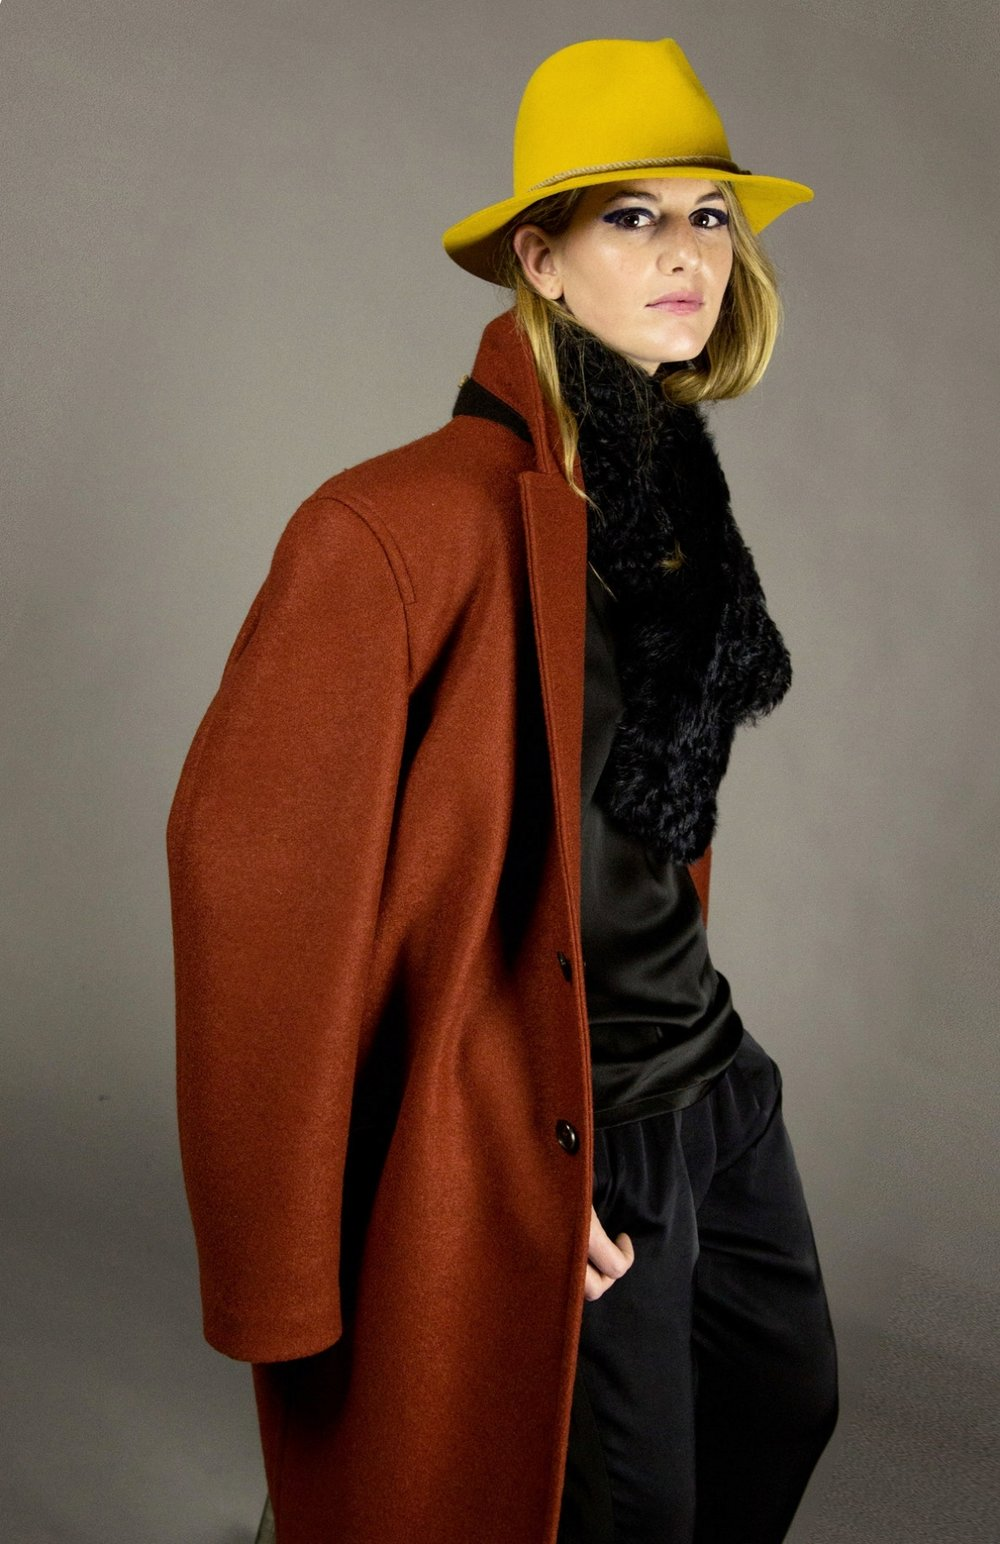 COAT 1 RUST  2-button walking coat.oversized fit. drop shoulder. unlined with bias piped seams. natural melange rope detail at neck.natural horn buttons. below knee length.  sizes 0-1-2-3  100% italian boiled-wool jersey  also available in black